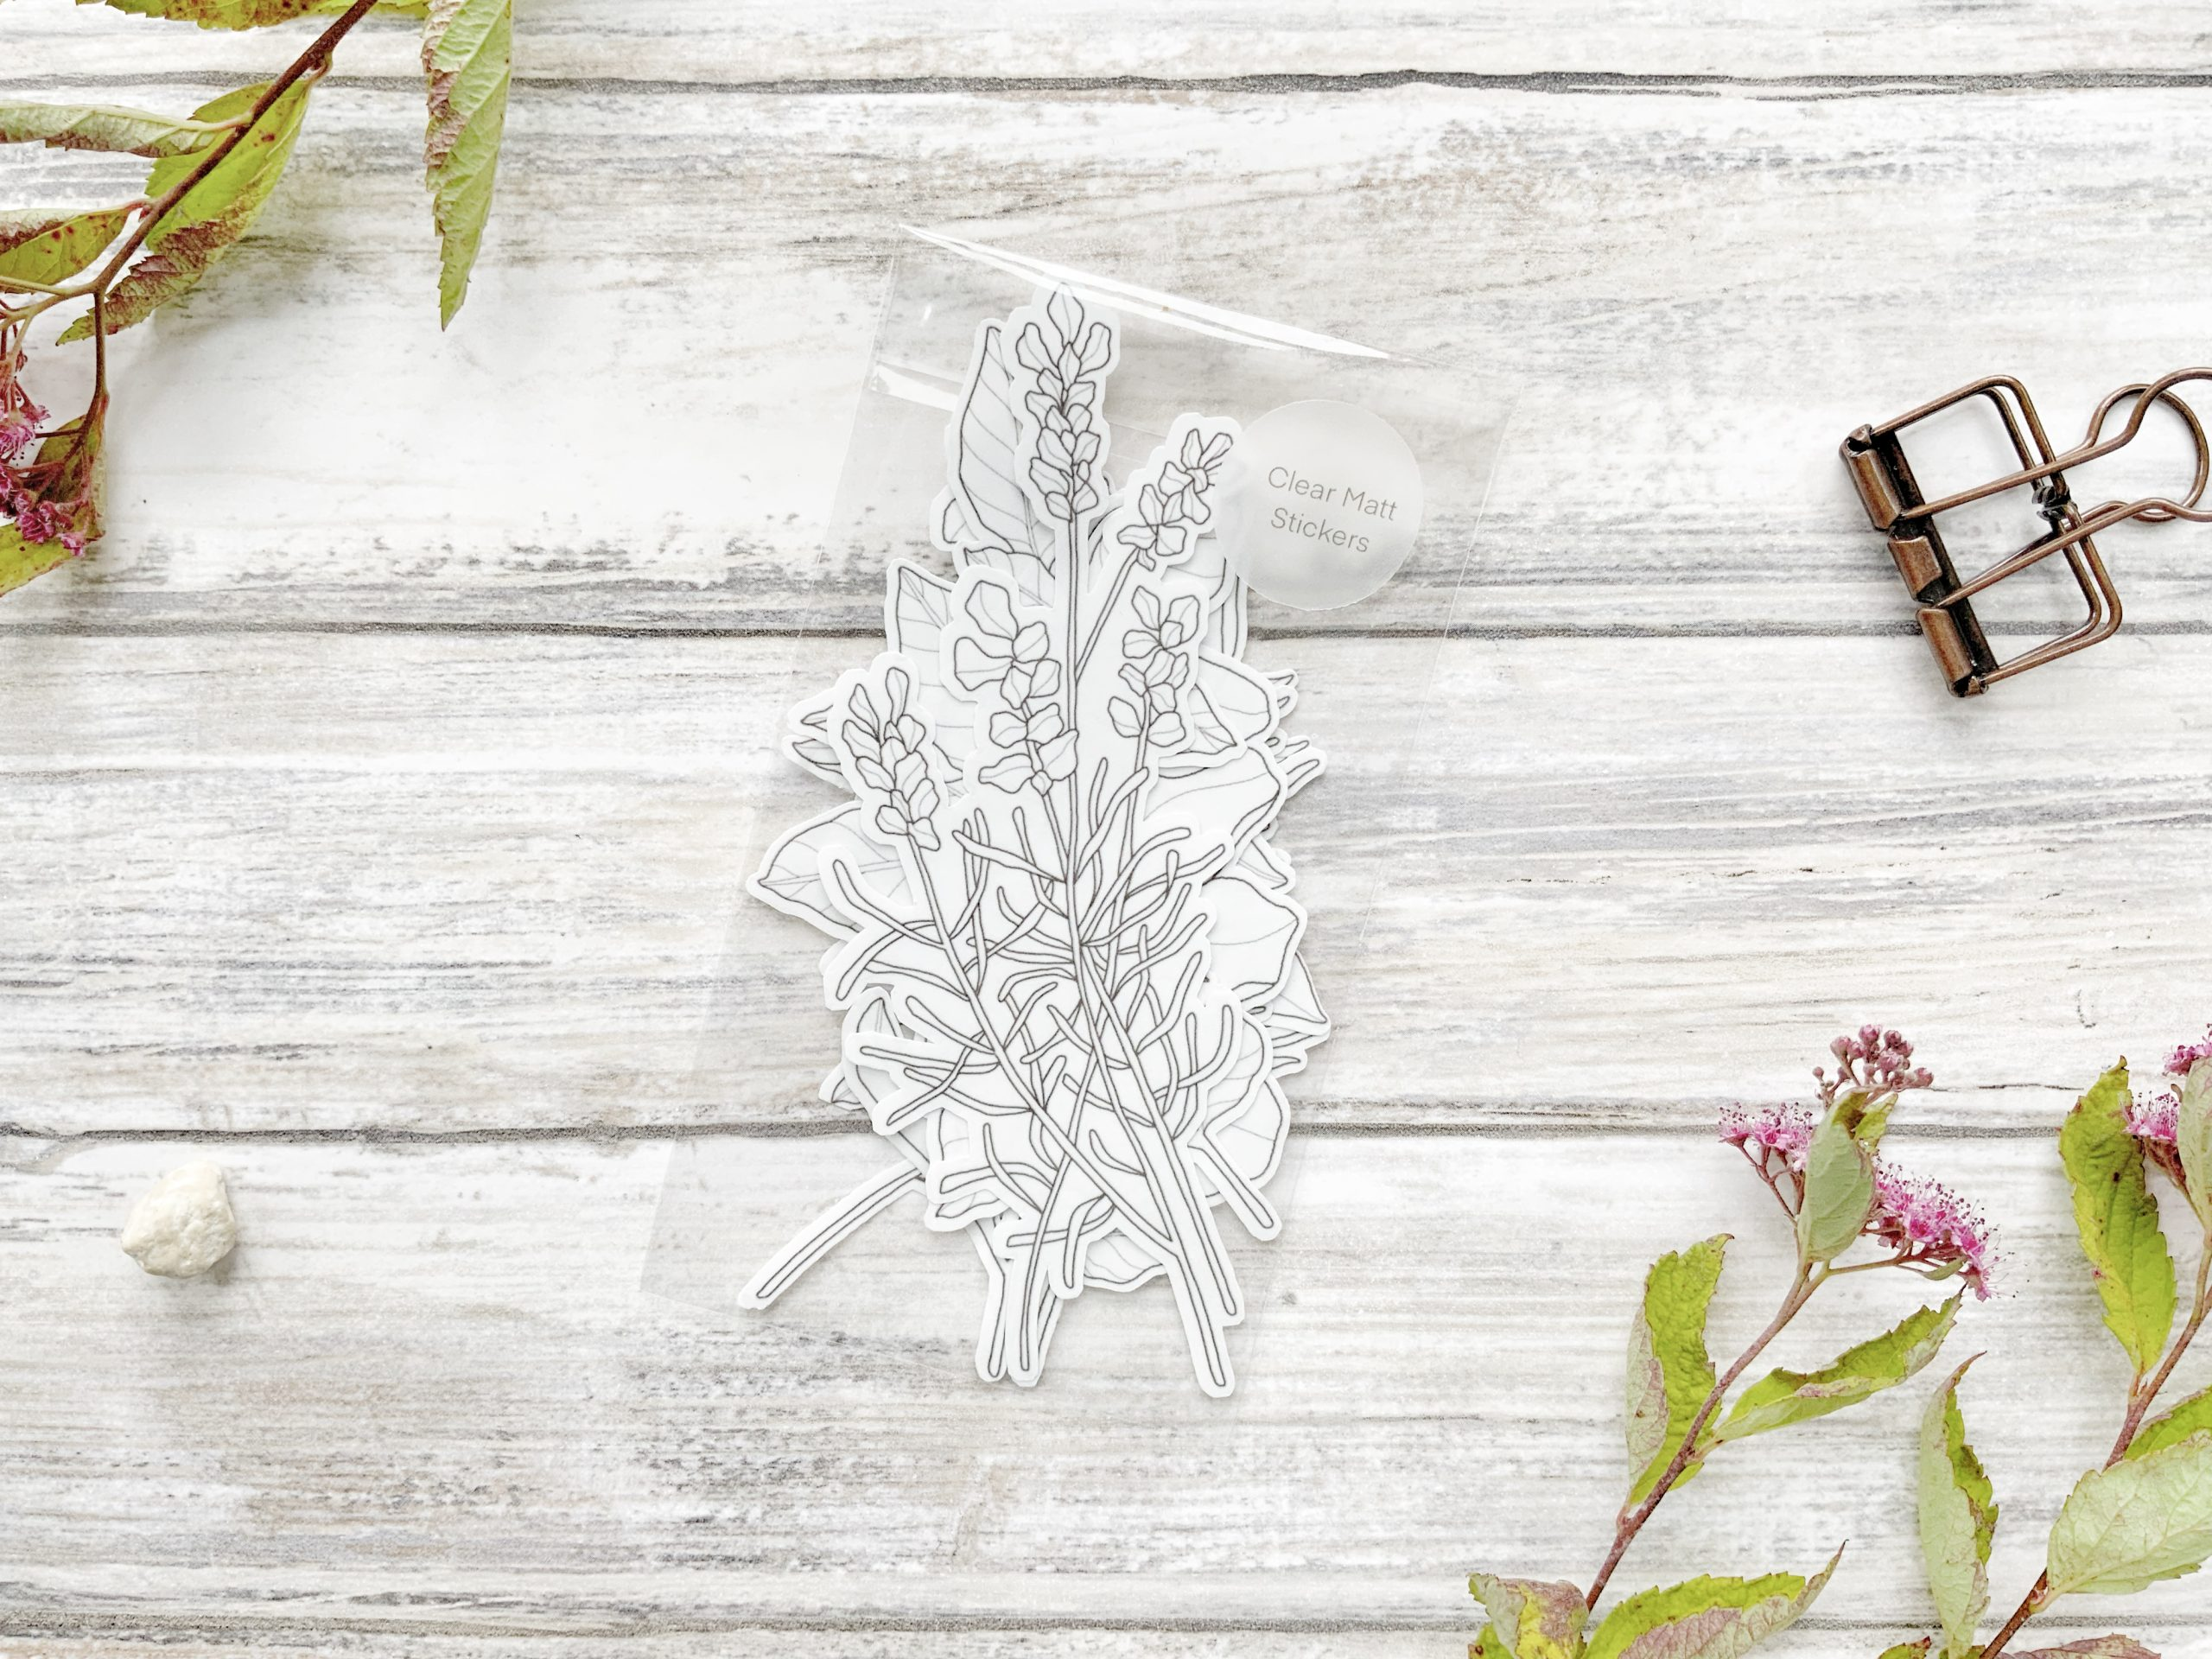 Garden Herbs and Plants – Set of 7 Die Cut Stickers